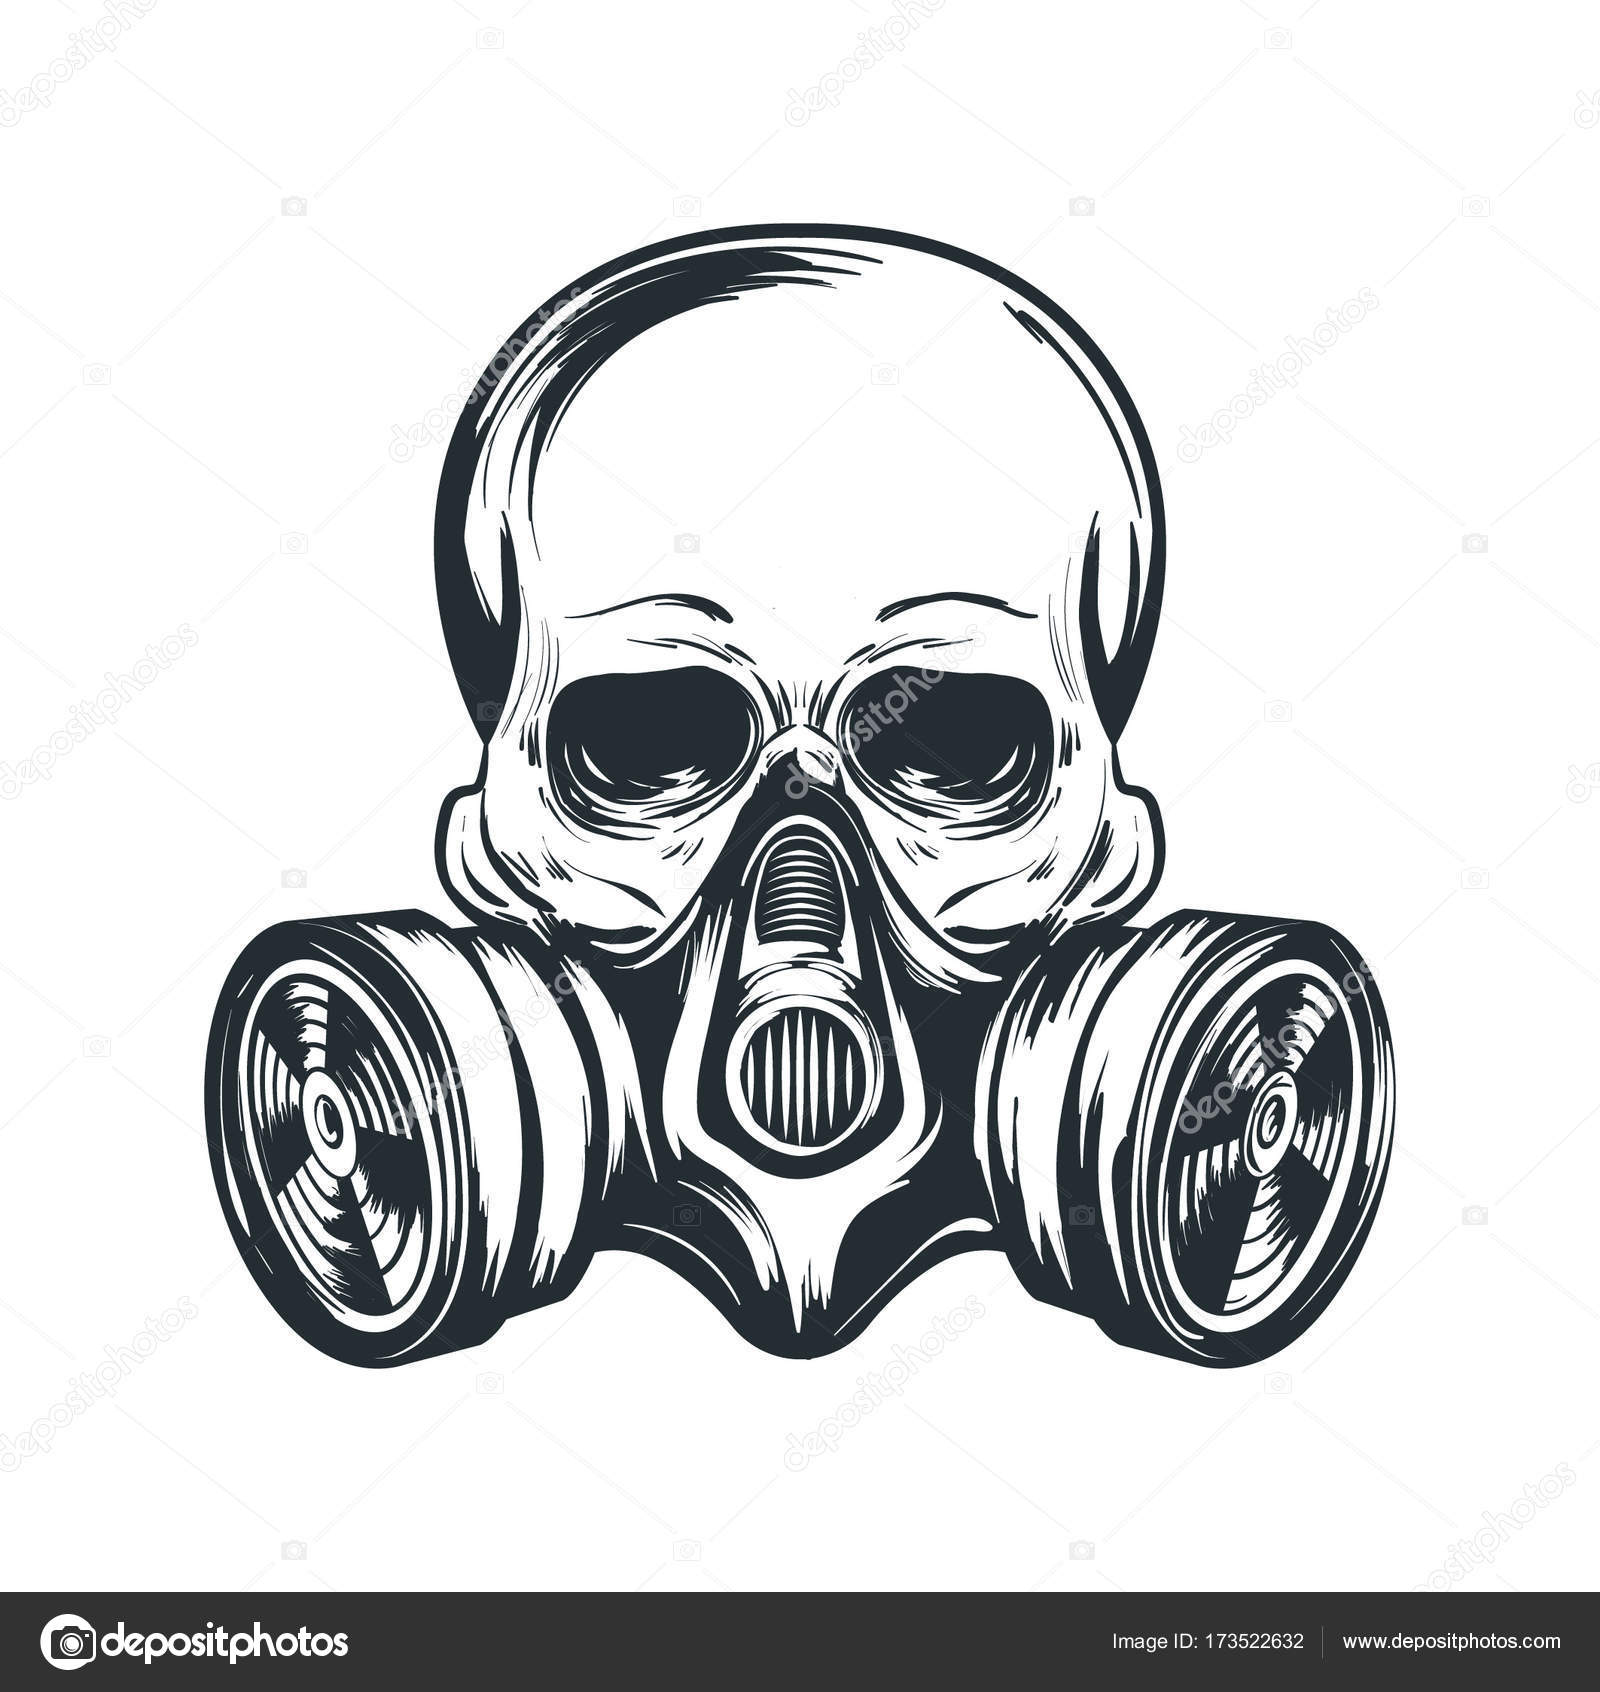 Skull In Gas Mask Illustration Toxicity Emblem Radiation Sign Can Be Used As